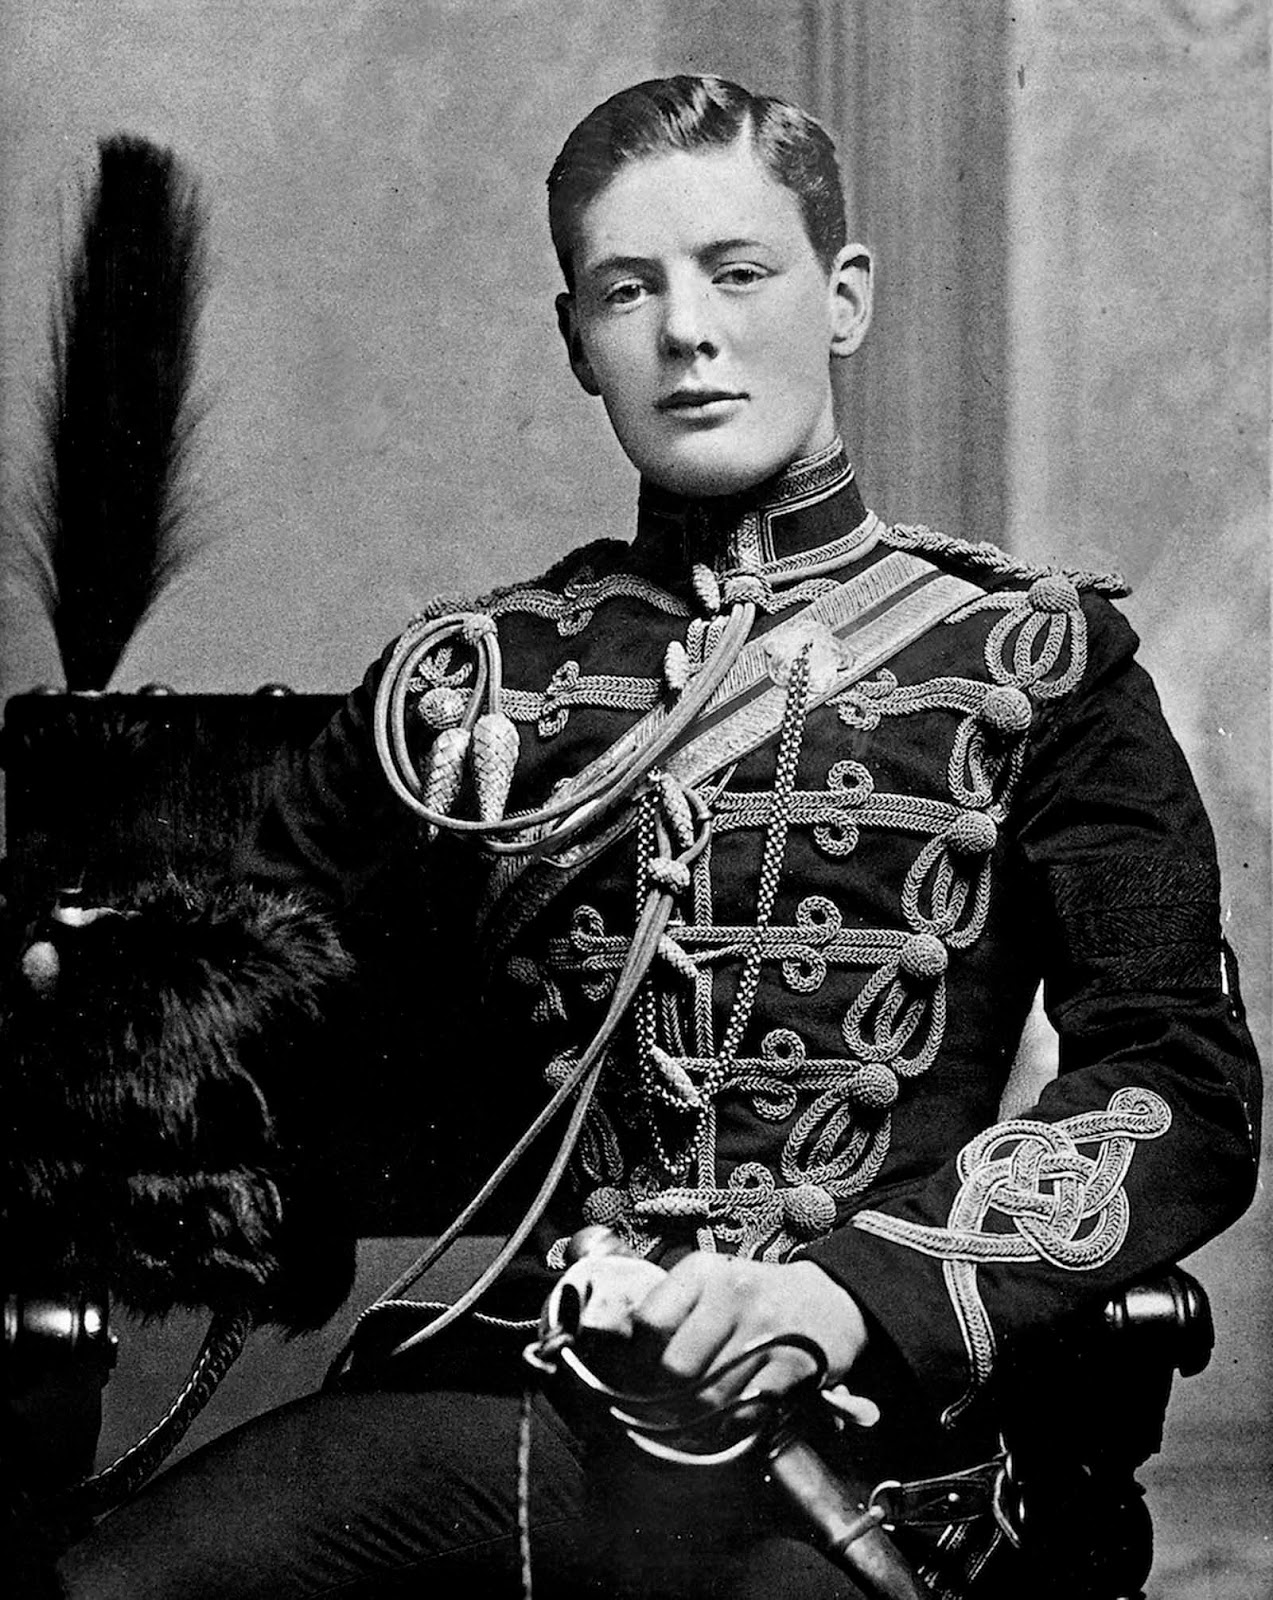 A rare shot of a 21 years old Winston Churchill, 1895.